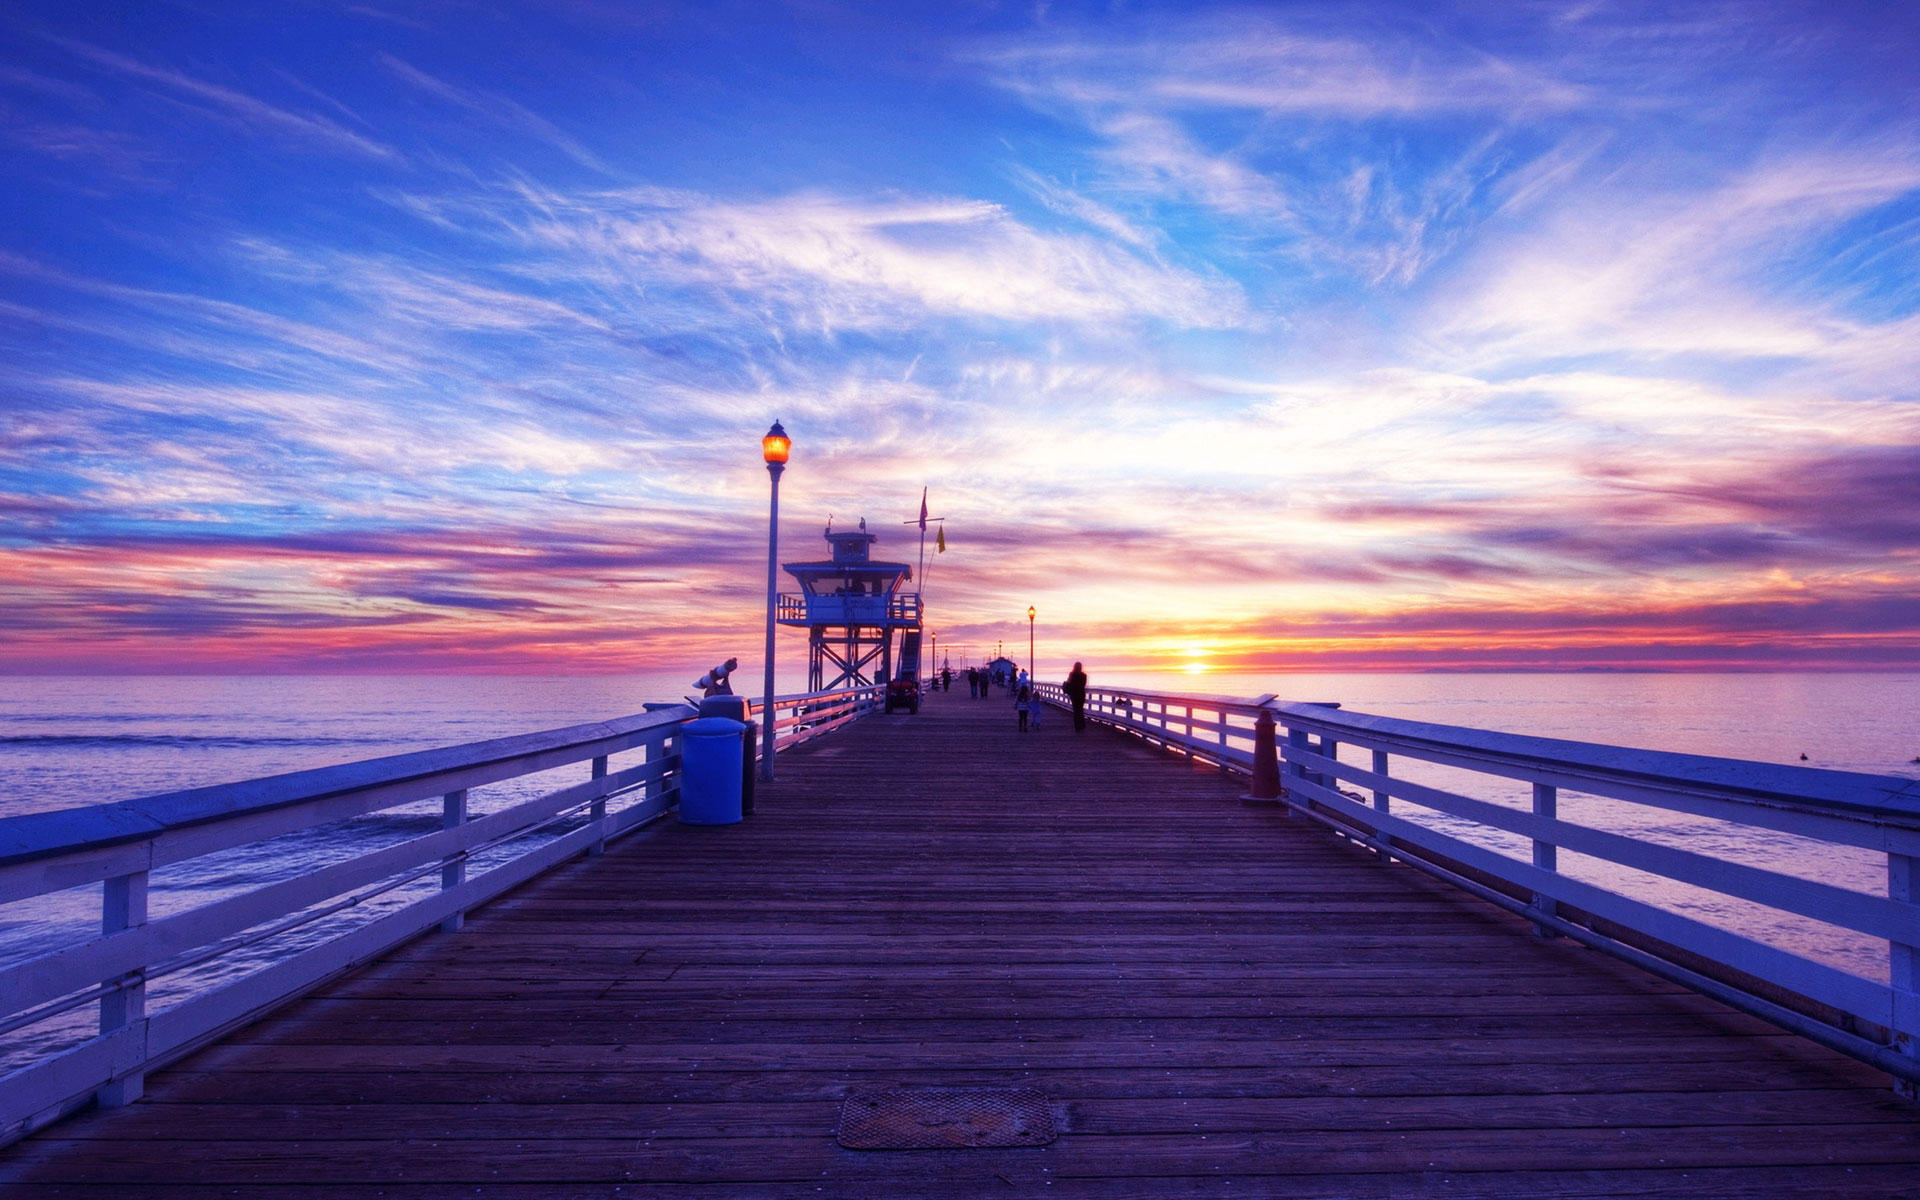 Pier sunset background